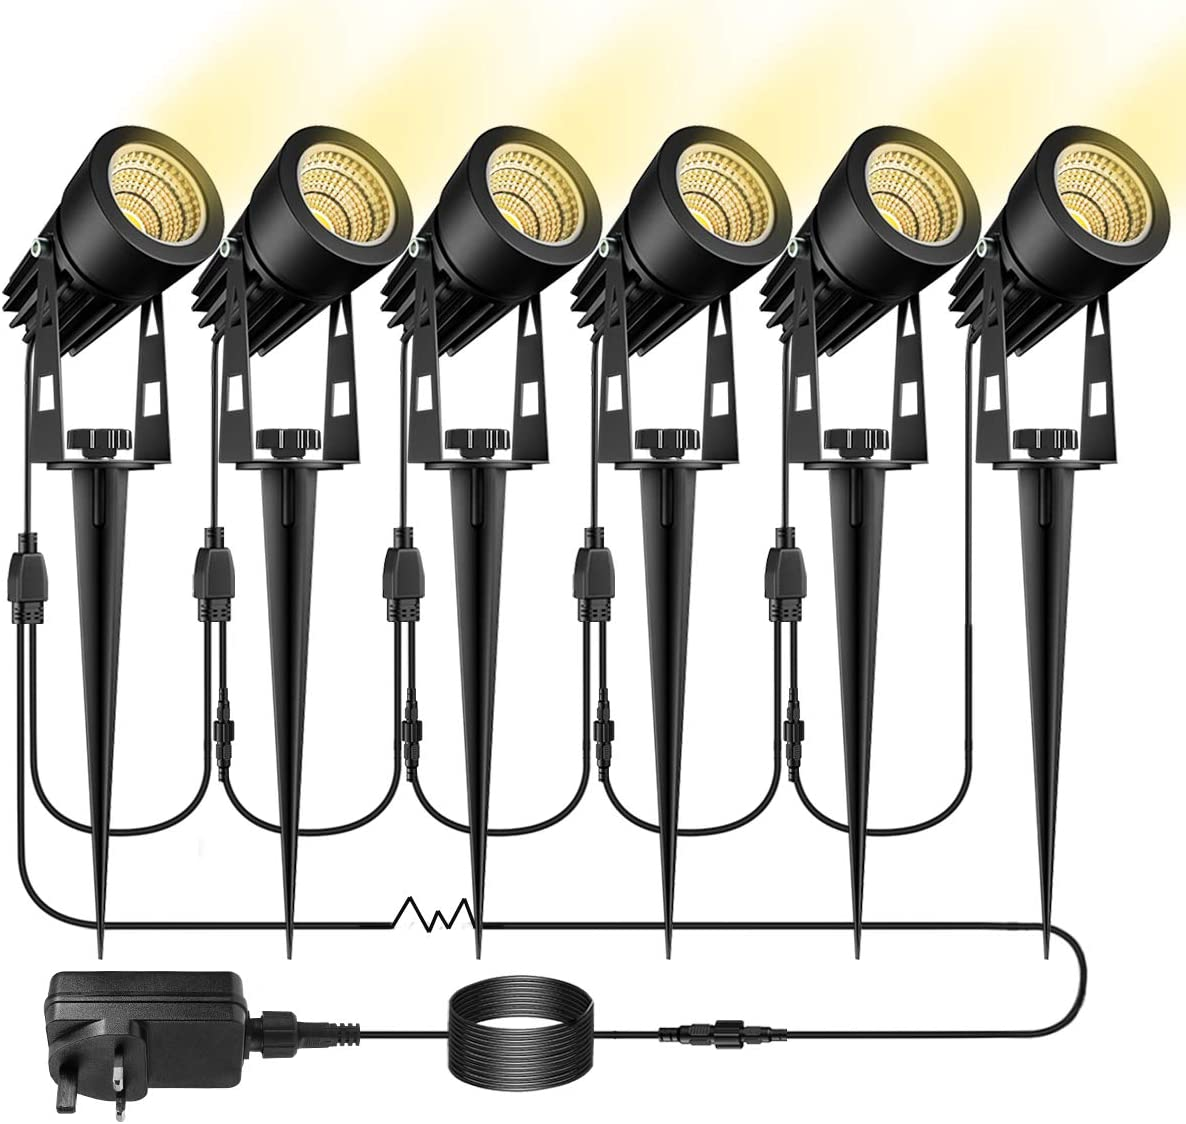 21m Garden Spotlights Extendable to 8 Spots ECOWHO 12v Garden Lights Mains Powered Low Voltage BS Aadapter Outdoor IP65 Waterproof Spike Light for Tree Wall Lawn Path Yard 18W